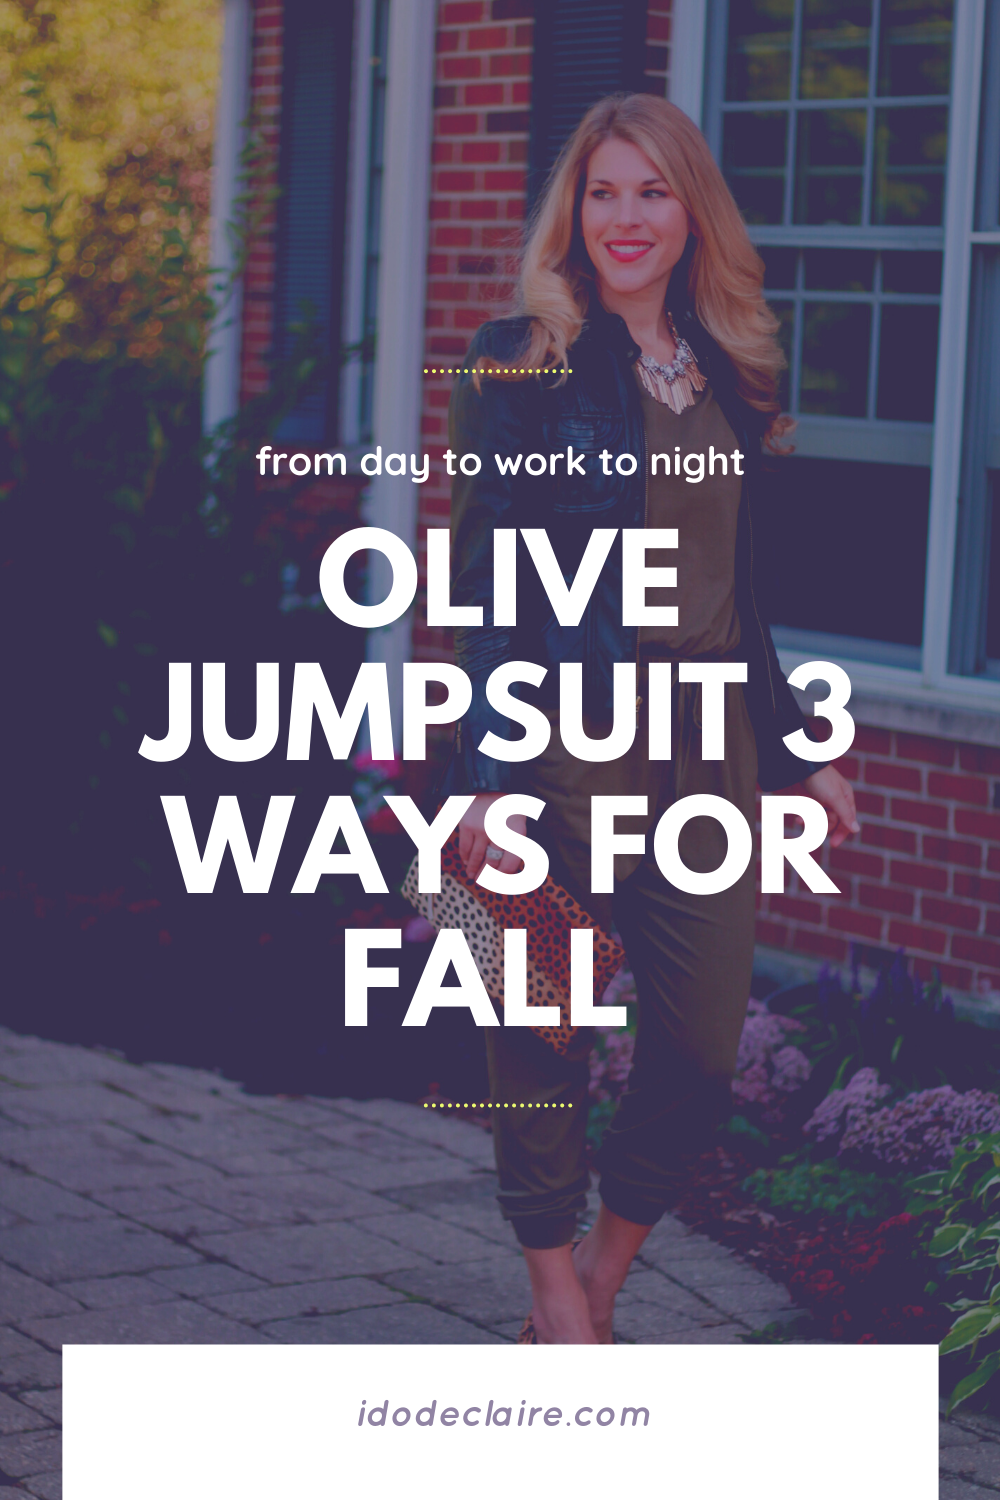 Olive Jumpsuit 3 Ways for Fall